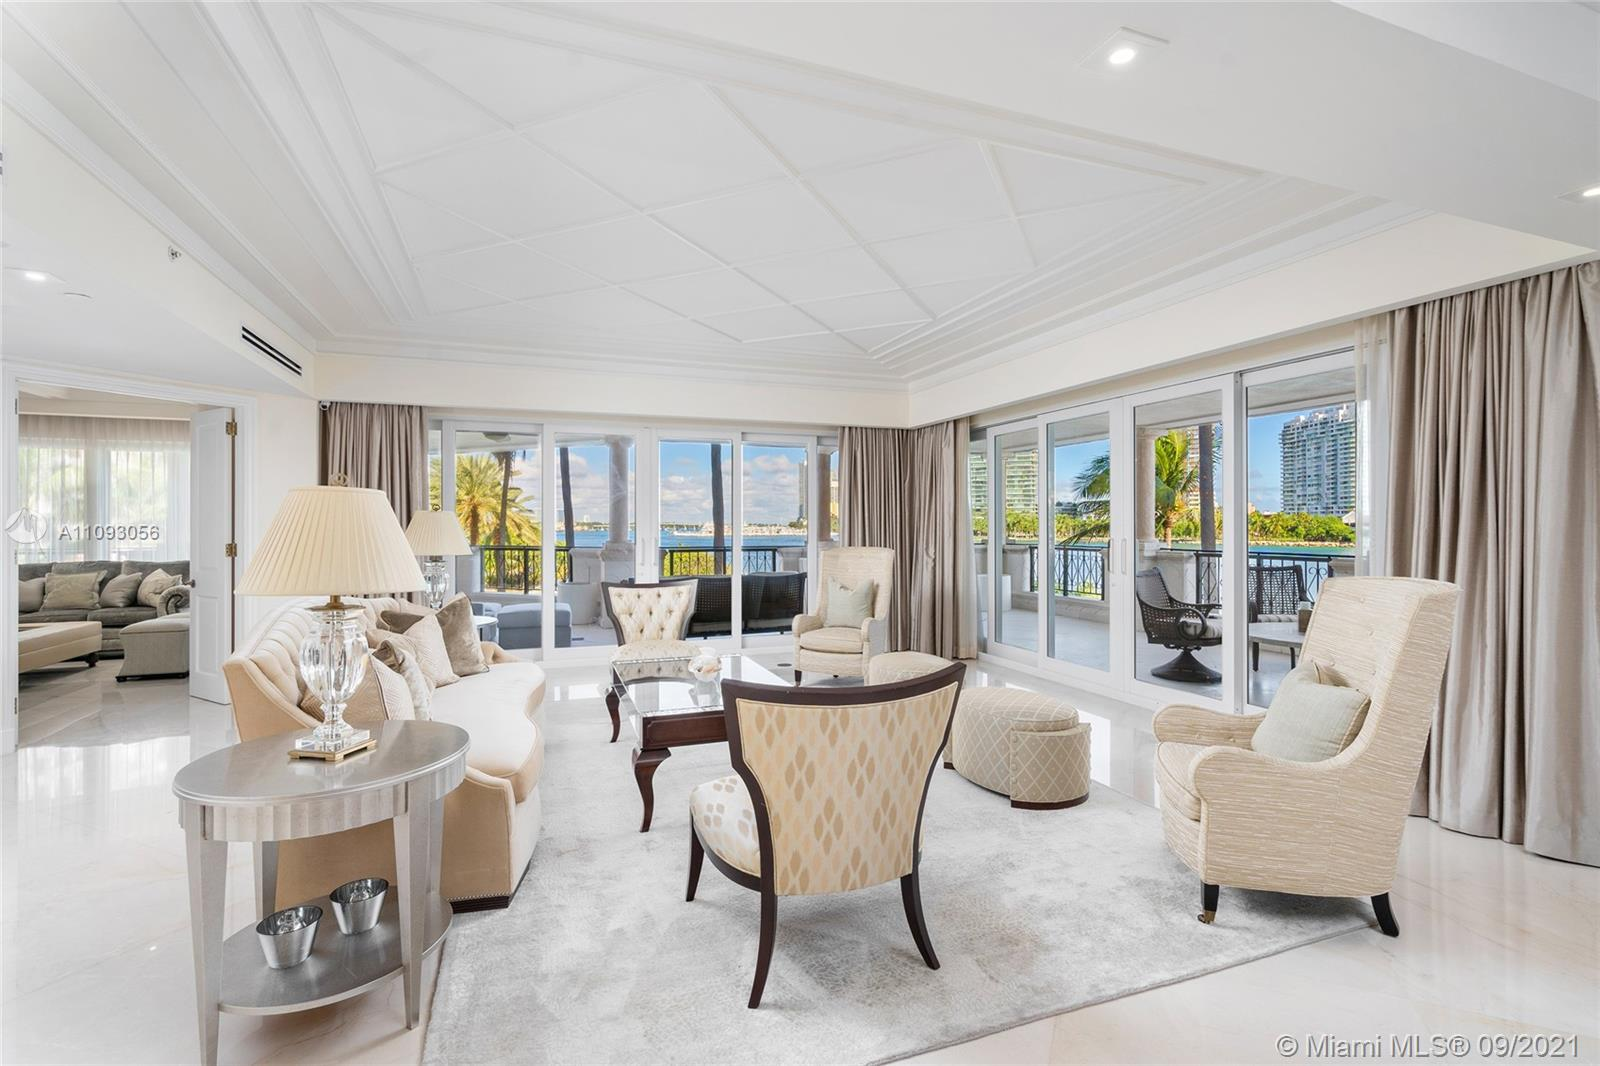 7221 Fisher Island Dr, Unit #7221 Luxury Real Estate